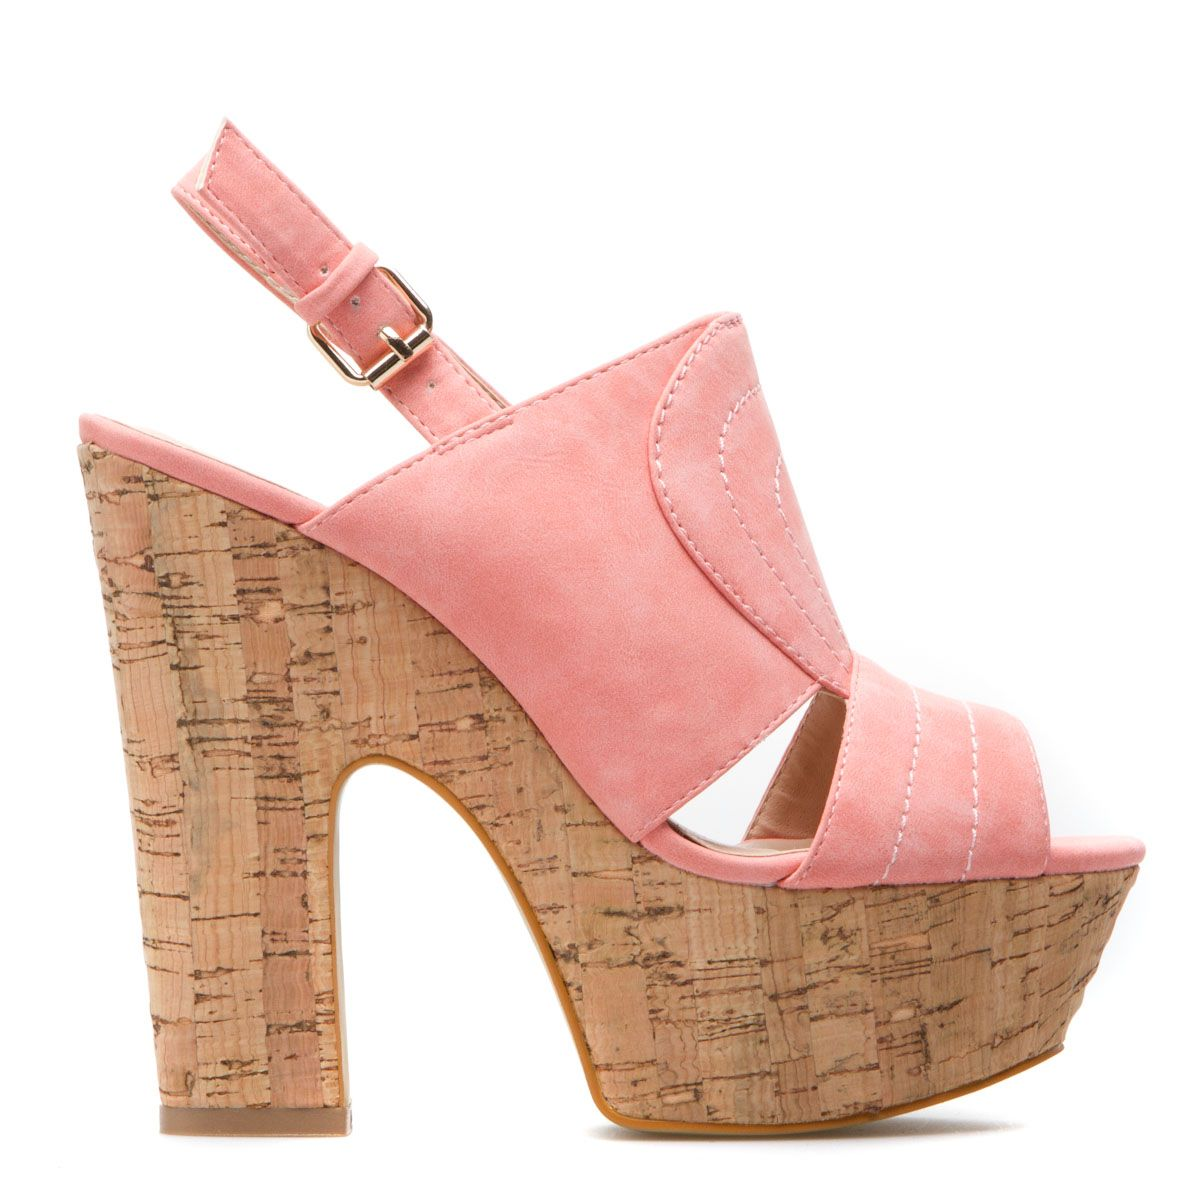 0474fa30233 Slingbacks, platforms, sandals and PINK? Why aren't these in my ...